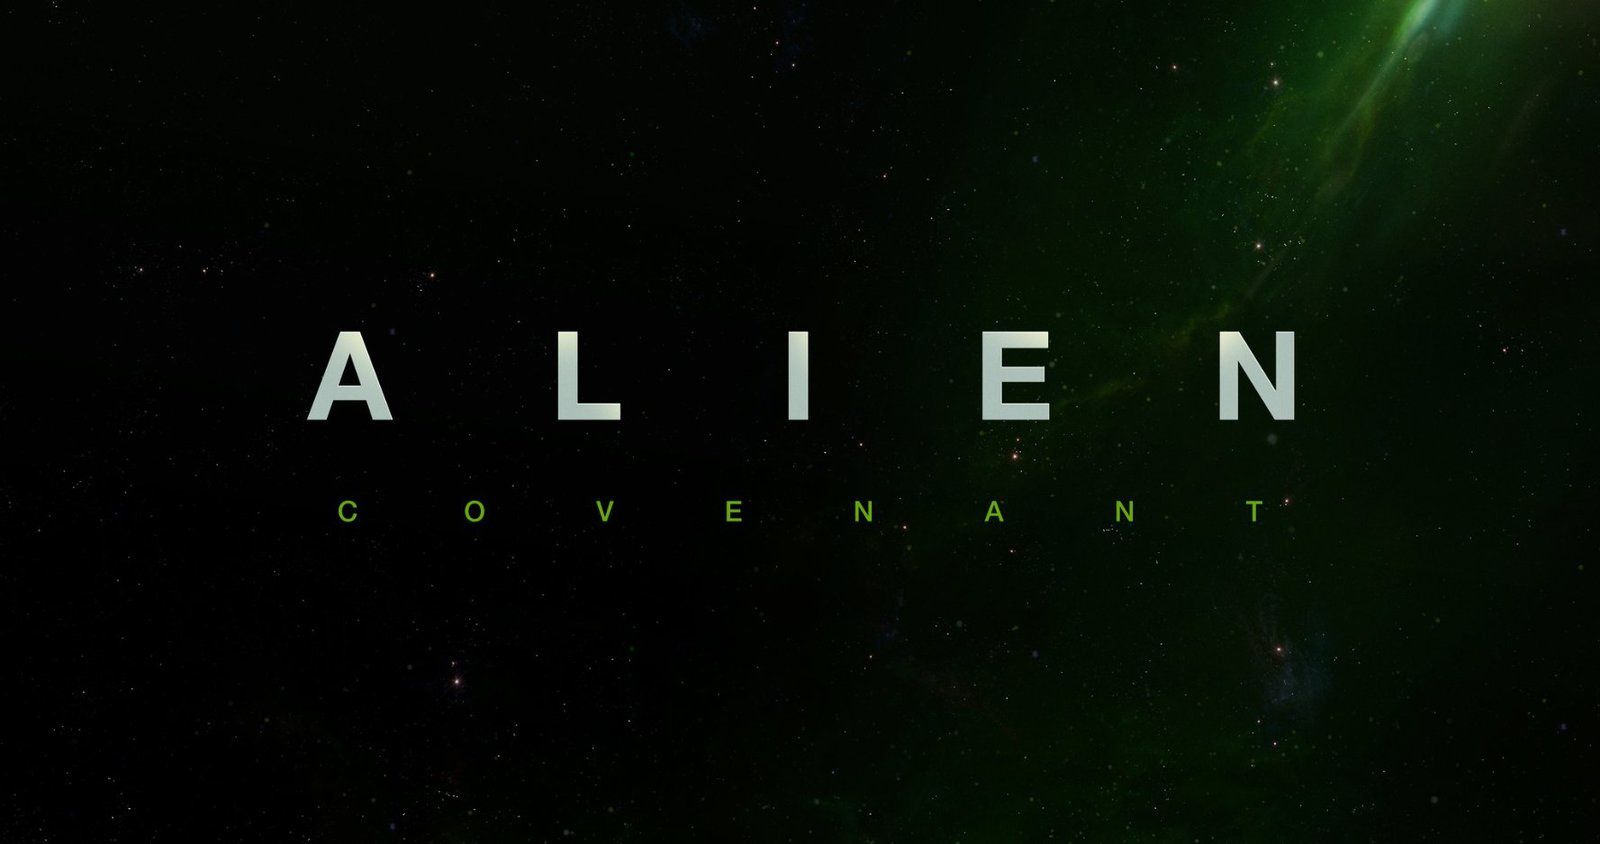 Box Office : ''Alien: Covenant'' en tête devant ''Les Gardiens de la galaxie vol.2''